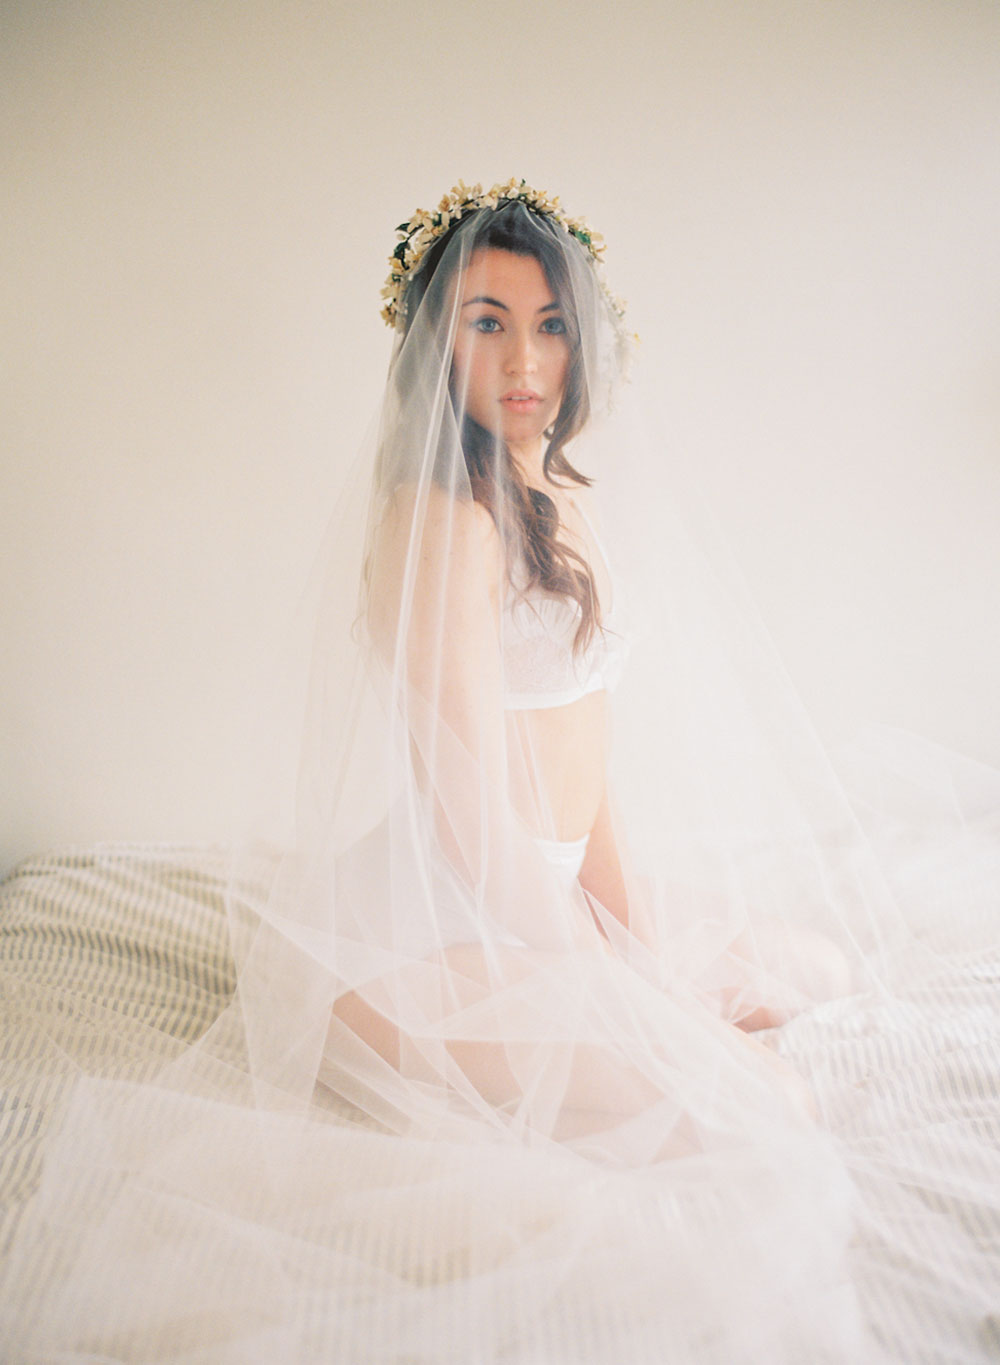 Bridal Boudoir look by Veronica Sheaffer